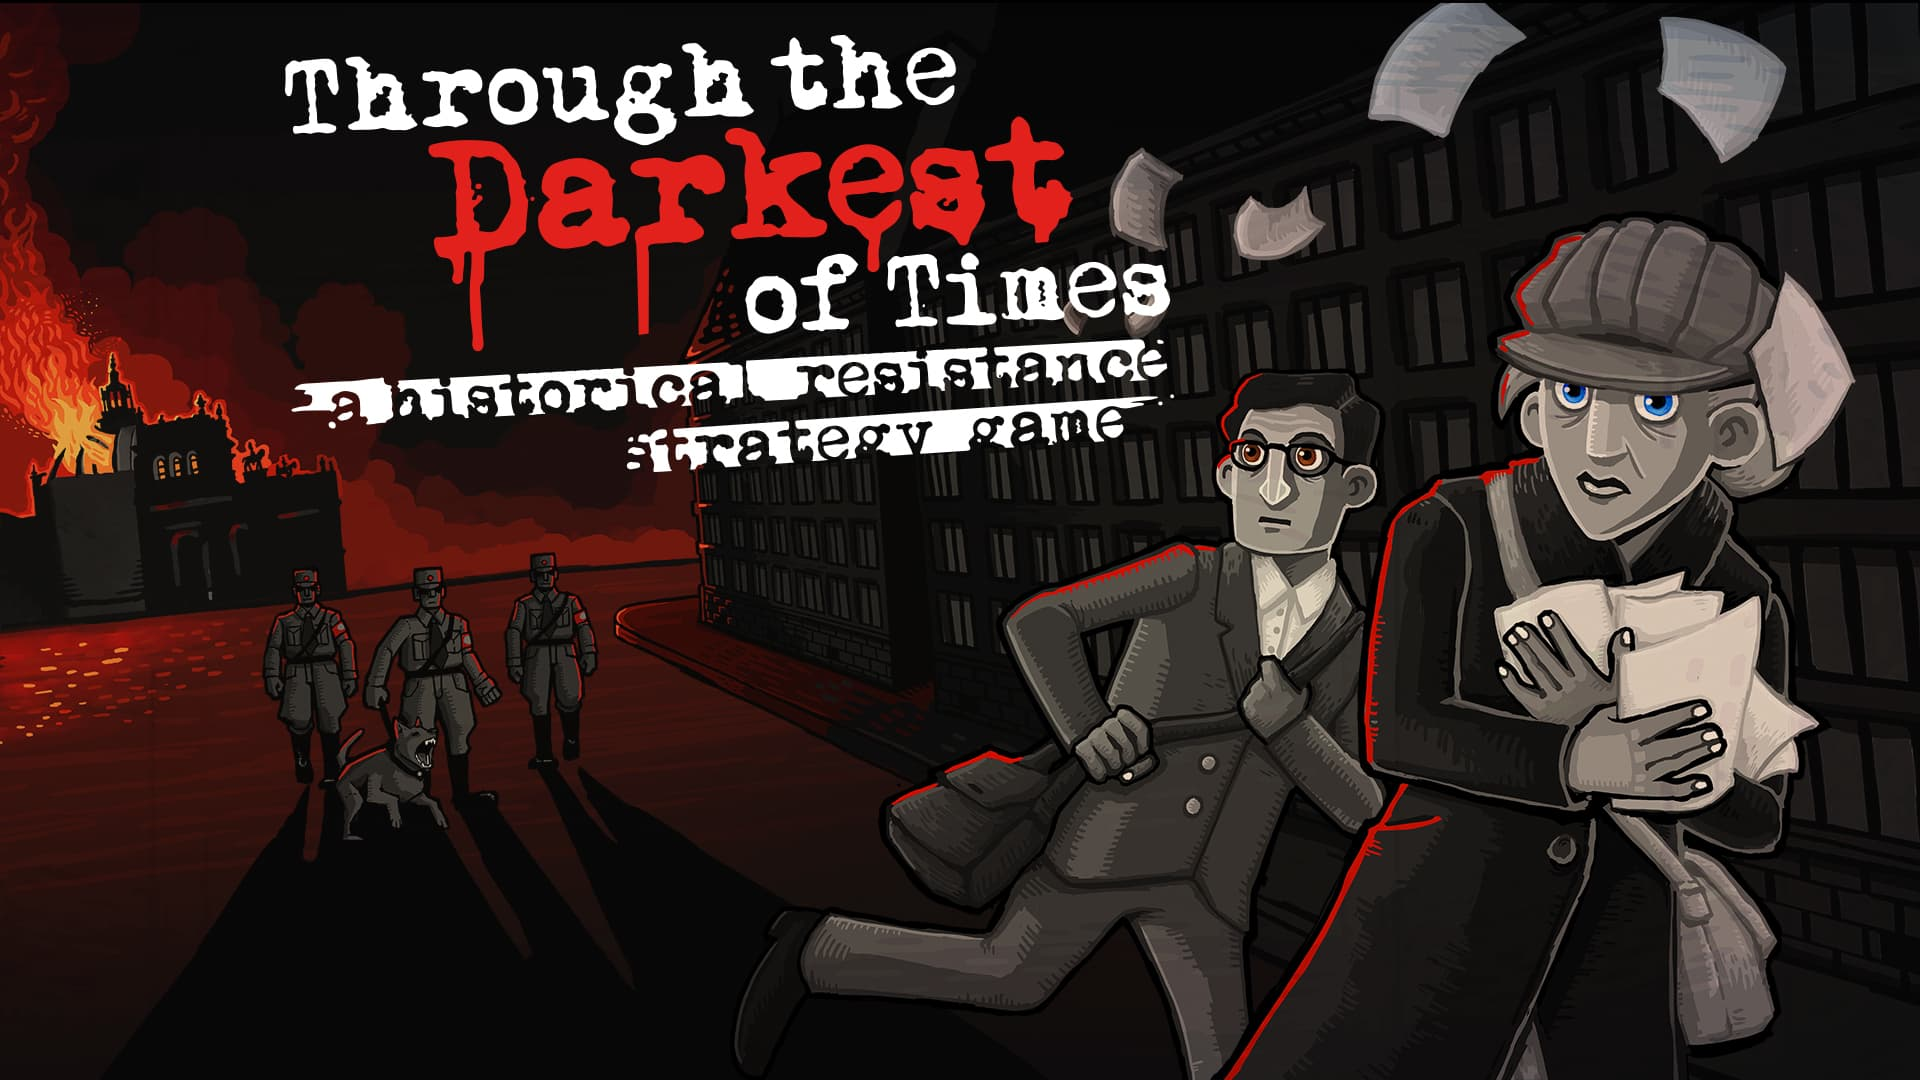 Your Google Play Pass deals include 20 new games – Through the Darkest of Times and more